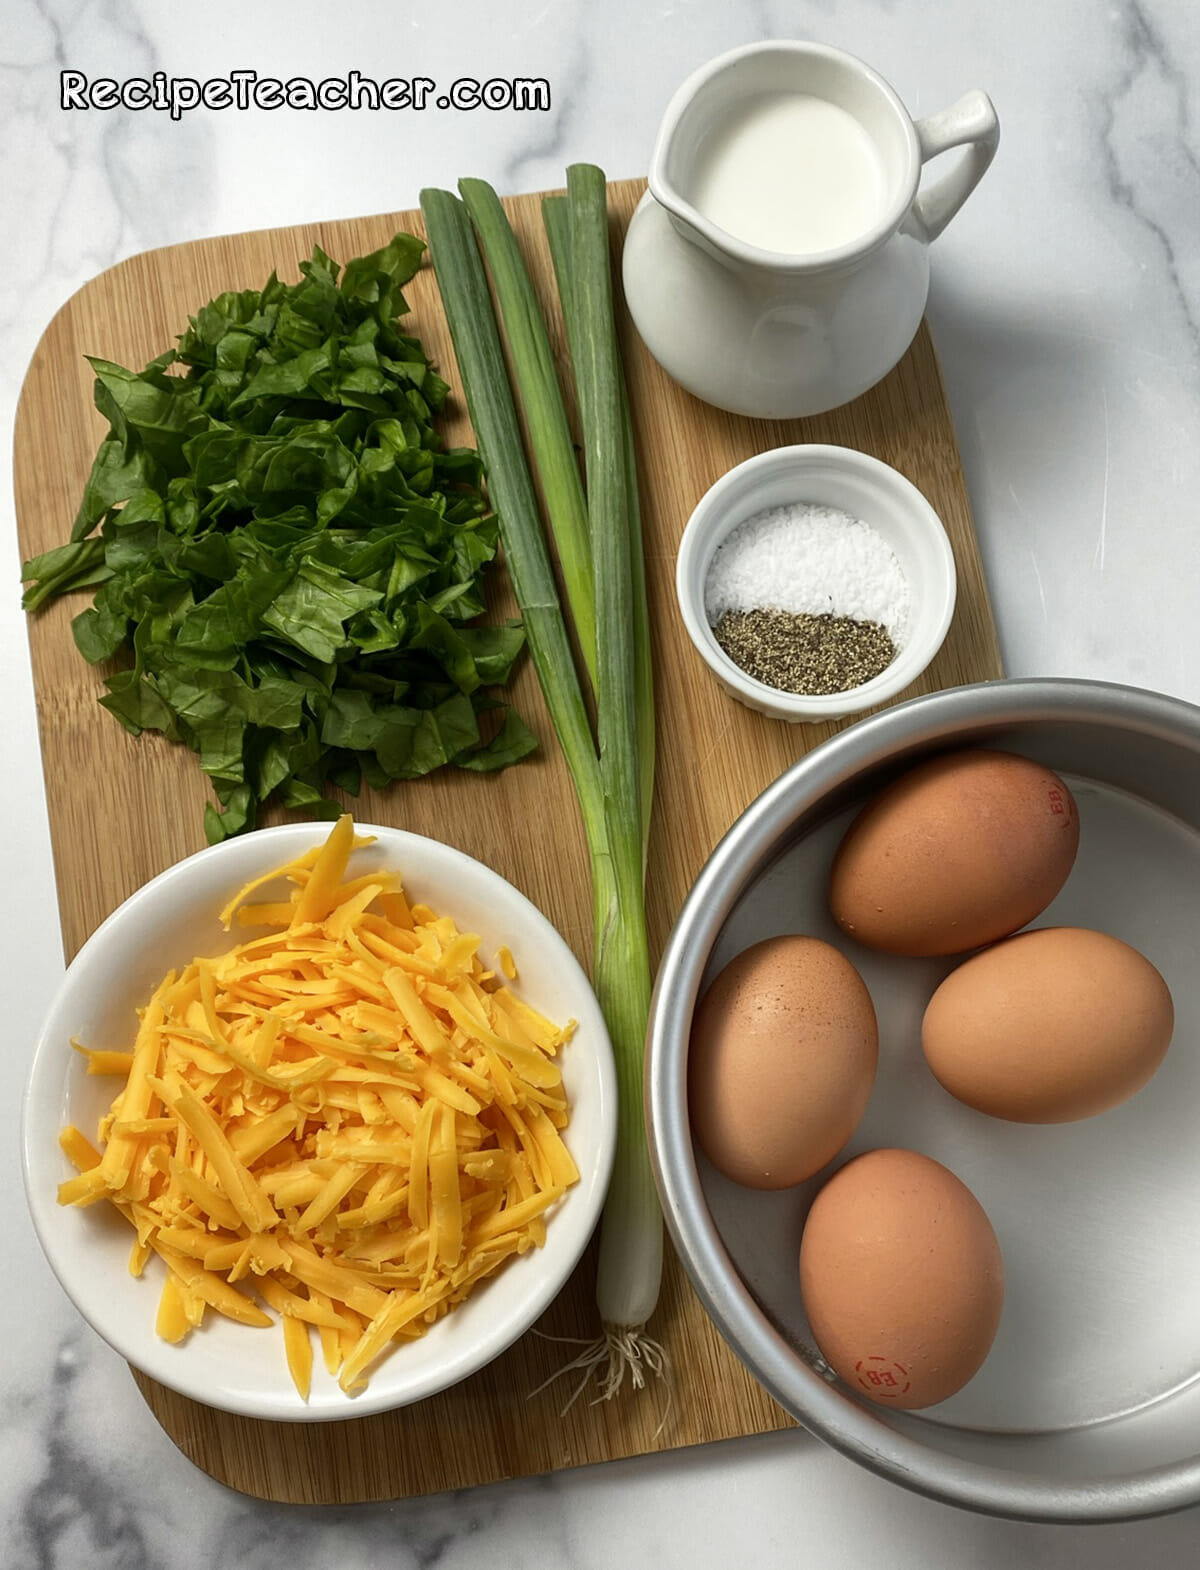 Ingredients for an air fryer breakfast frittata